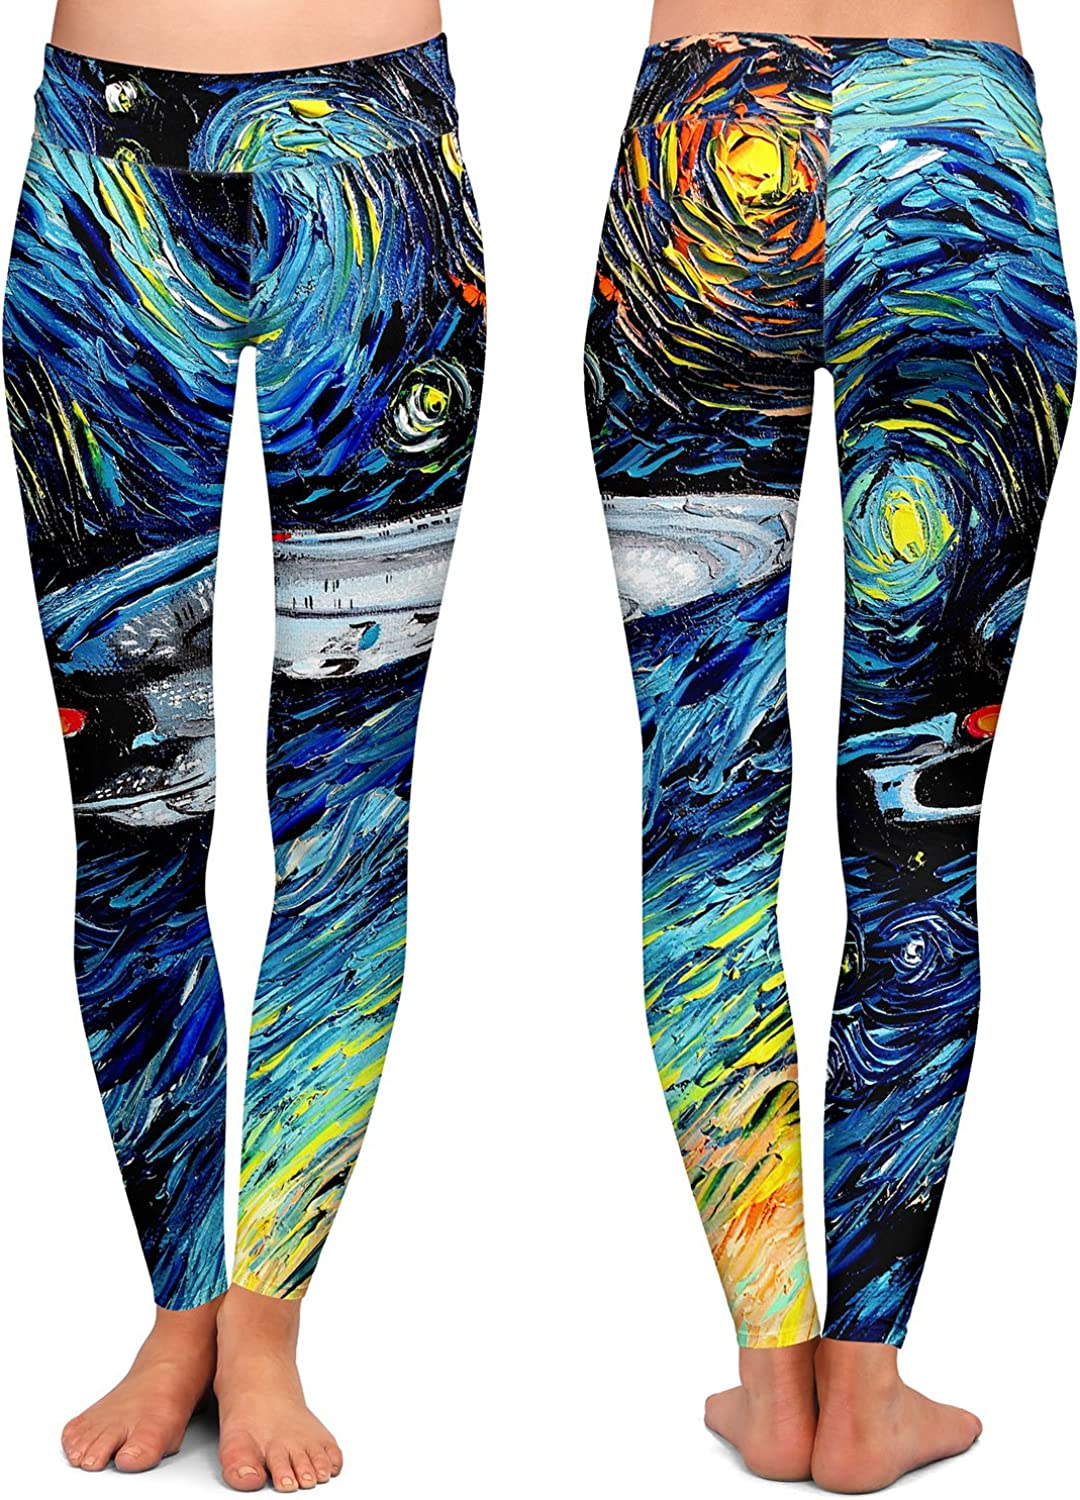 Passage to Hope Athletic Yoga Leggings from DiaNoche Designs by Philip Straub